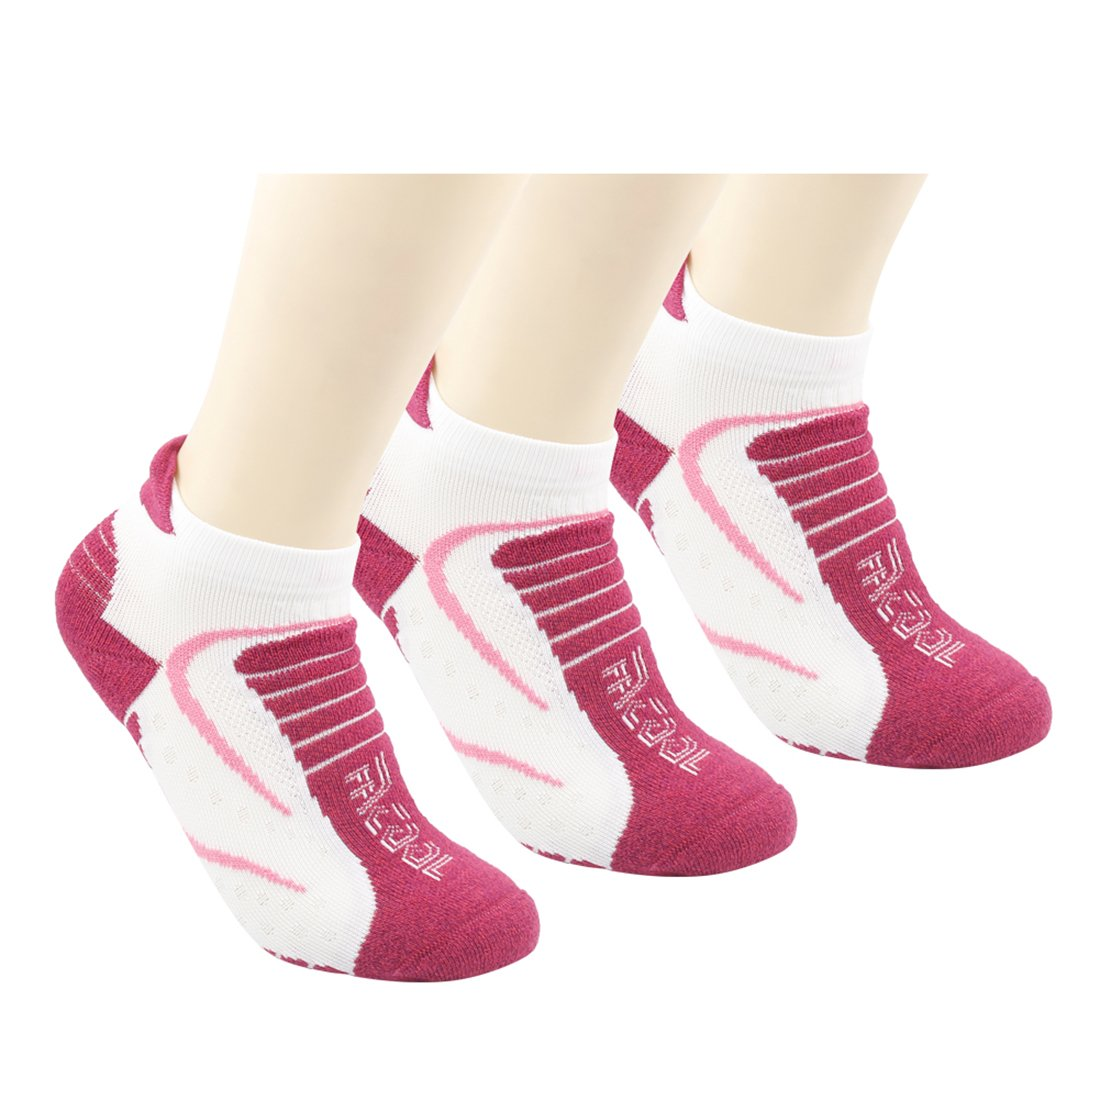 Athletic Running Socks Facool Women Ladies Thick Padded Casual Crew Low Cut Ankle Hiking Socks,One Size,3 Pairs Rose White&red by Facool